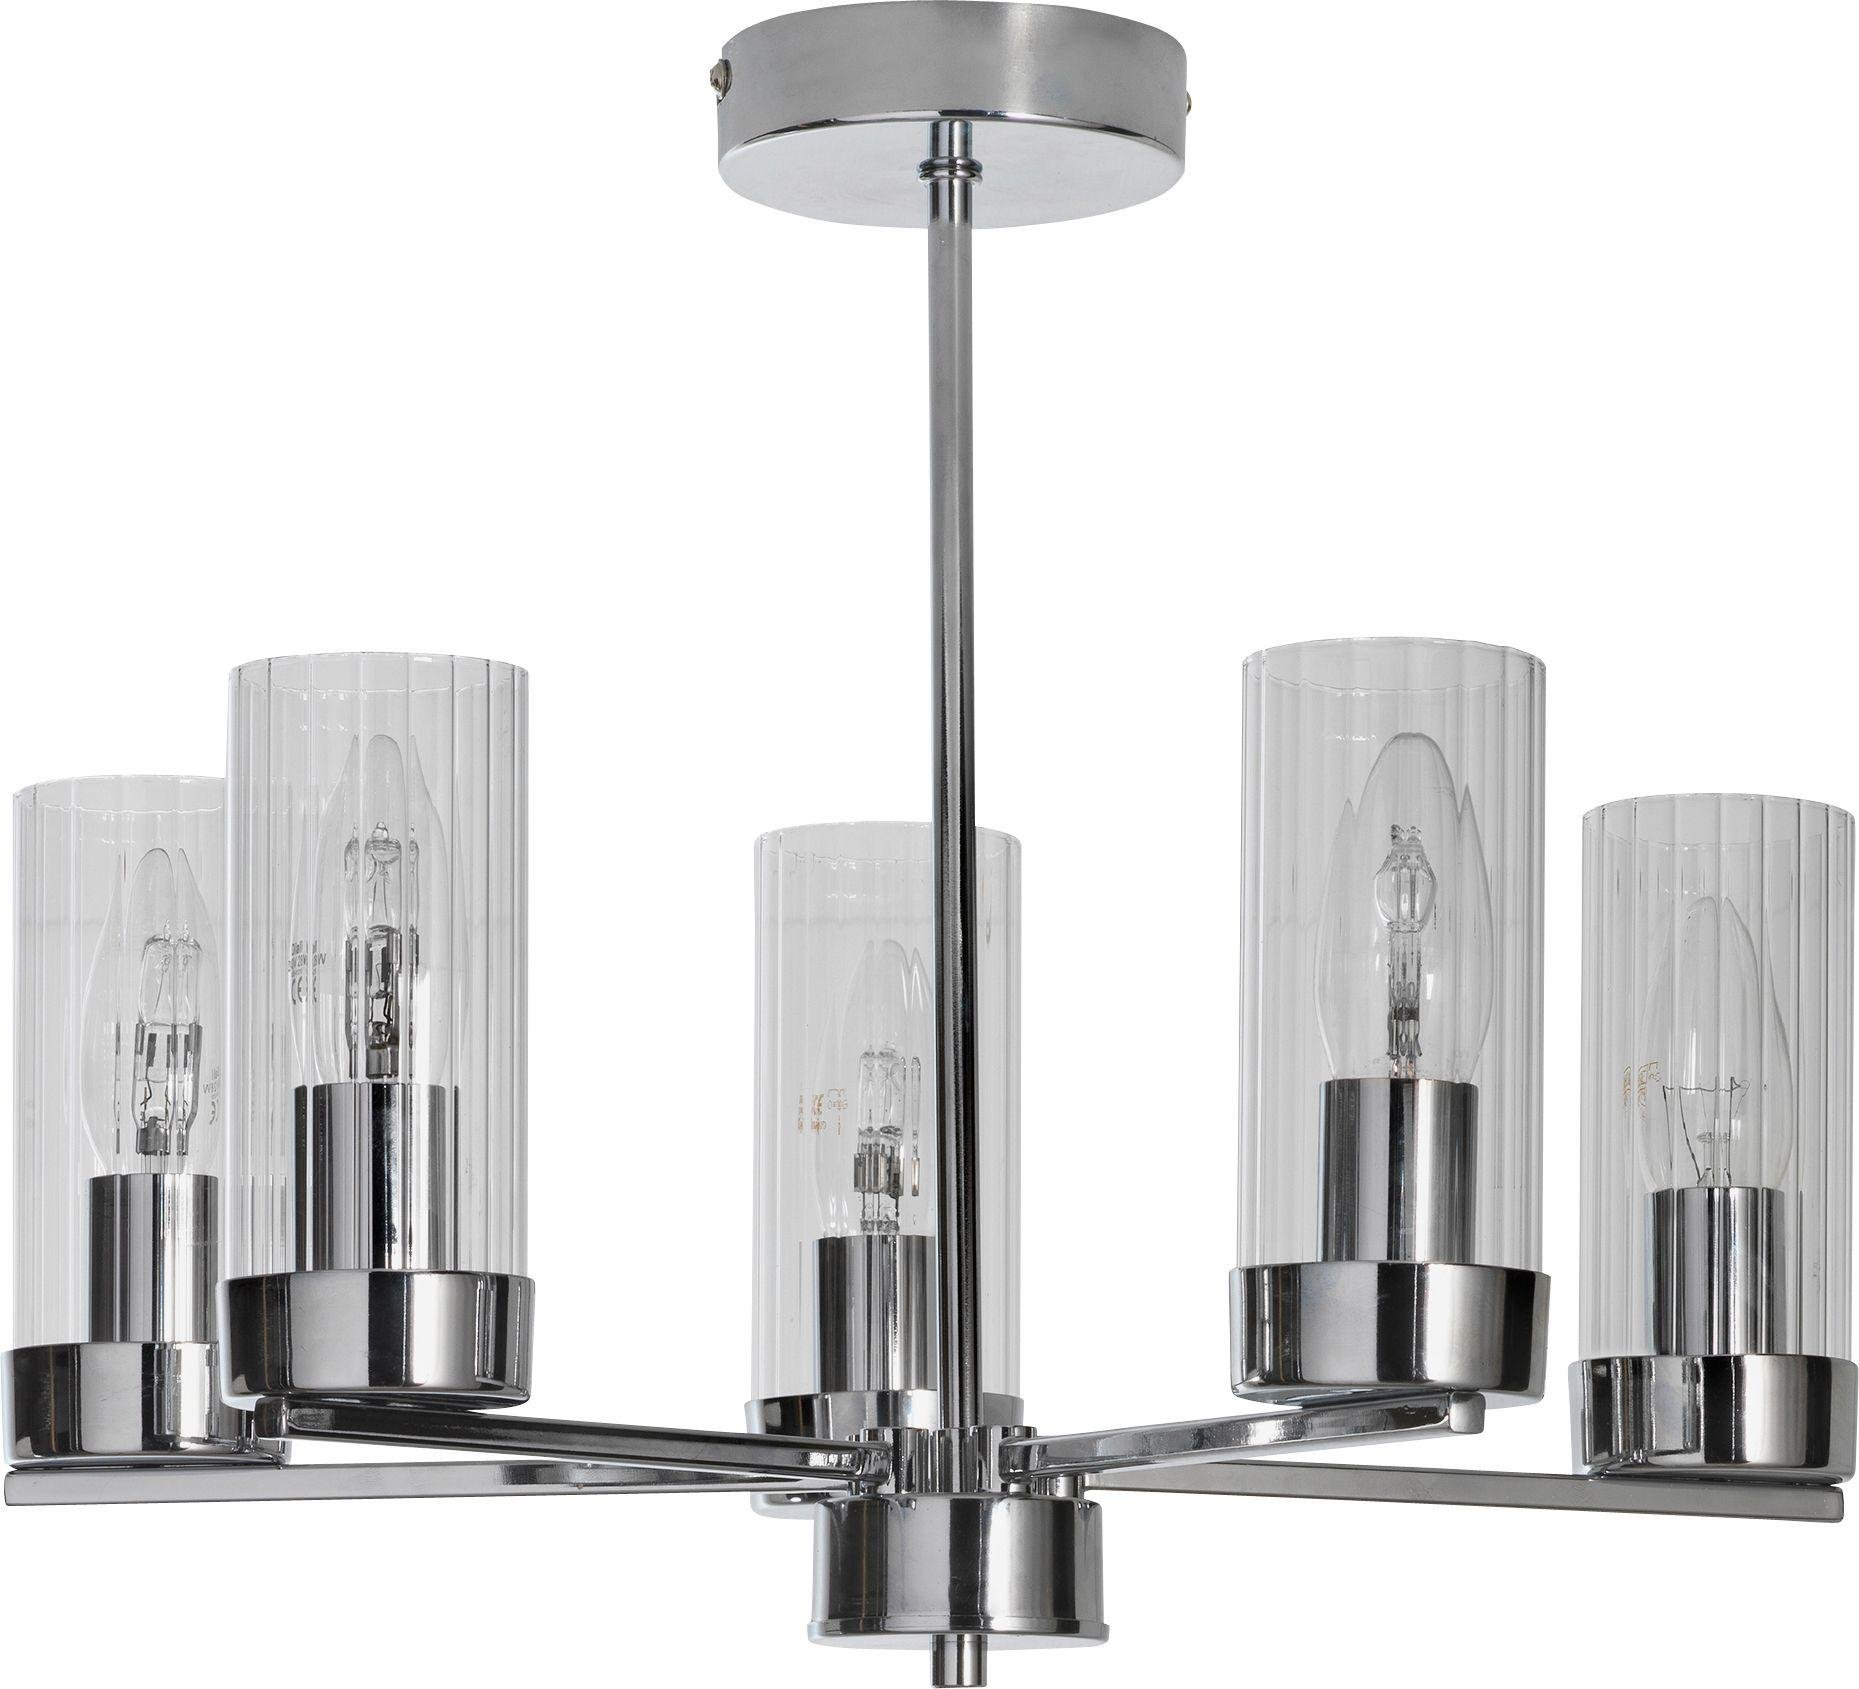 Argos Home Wallis 5 Light Glass Ceiling Light - Chrome